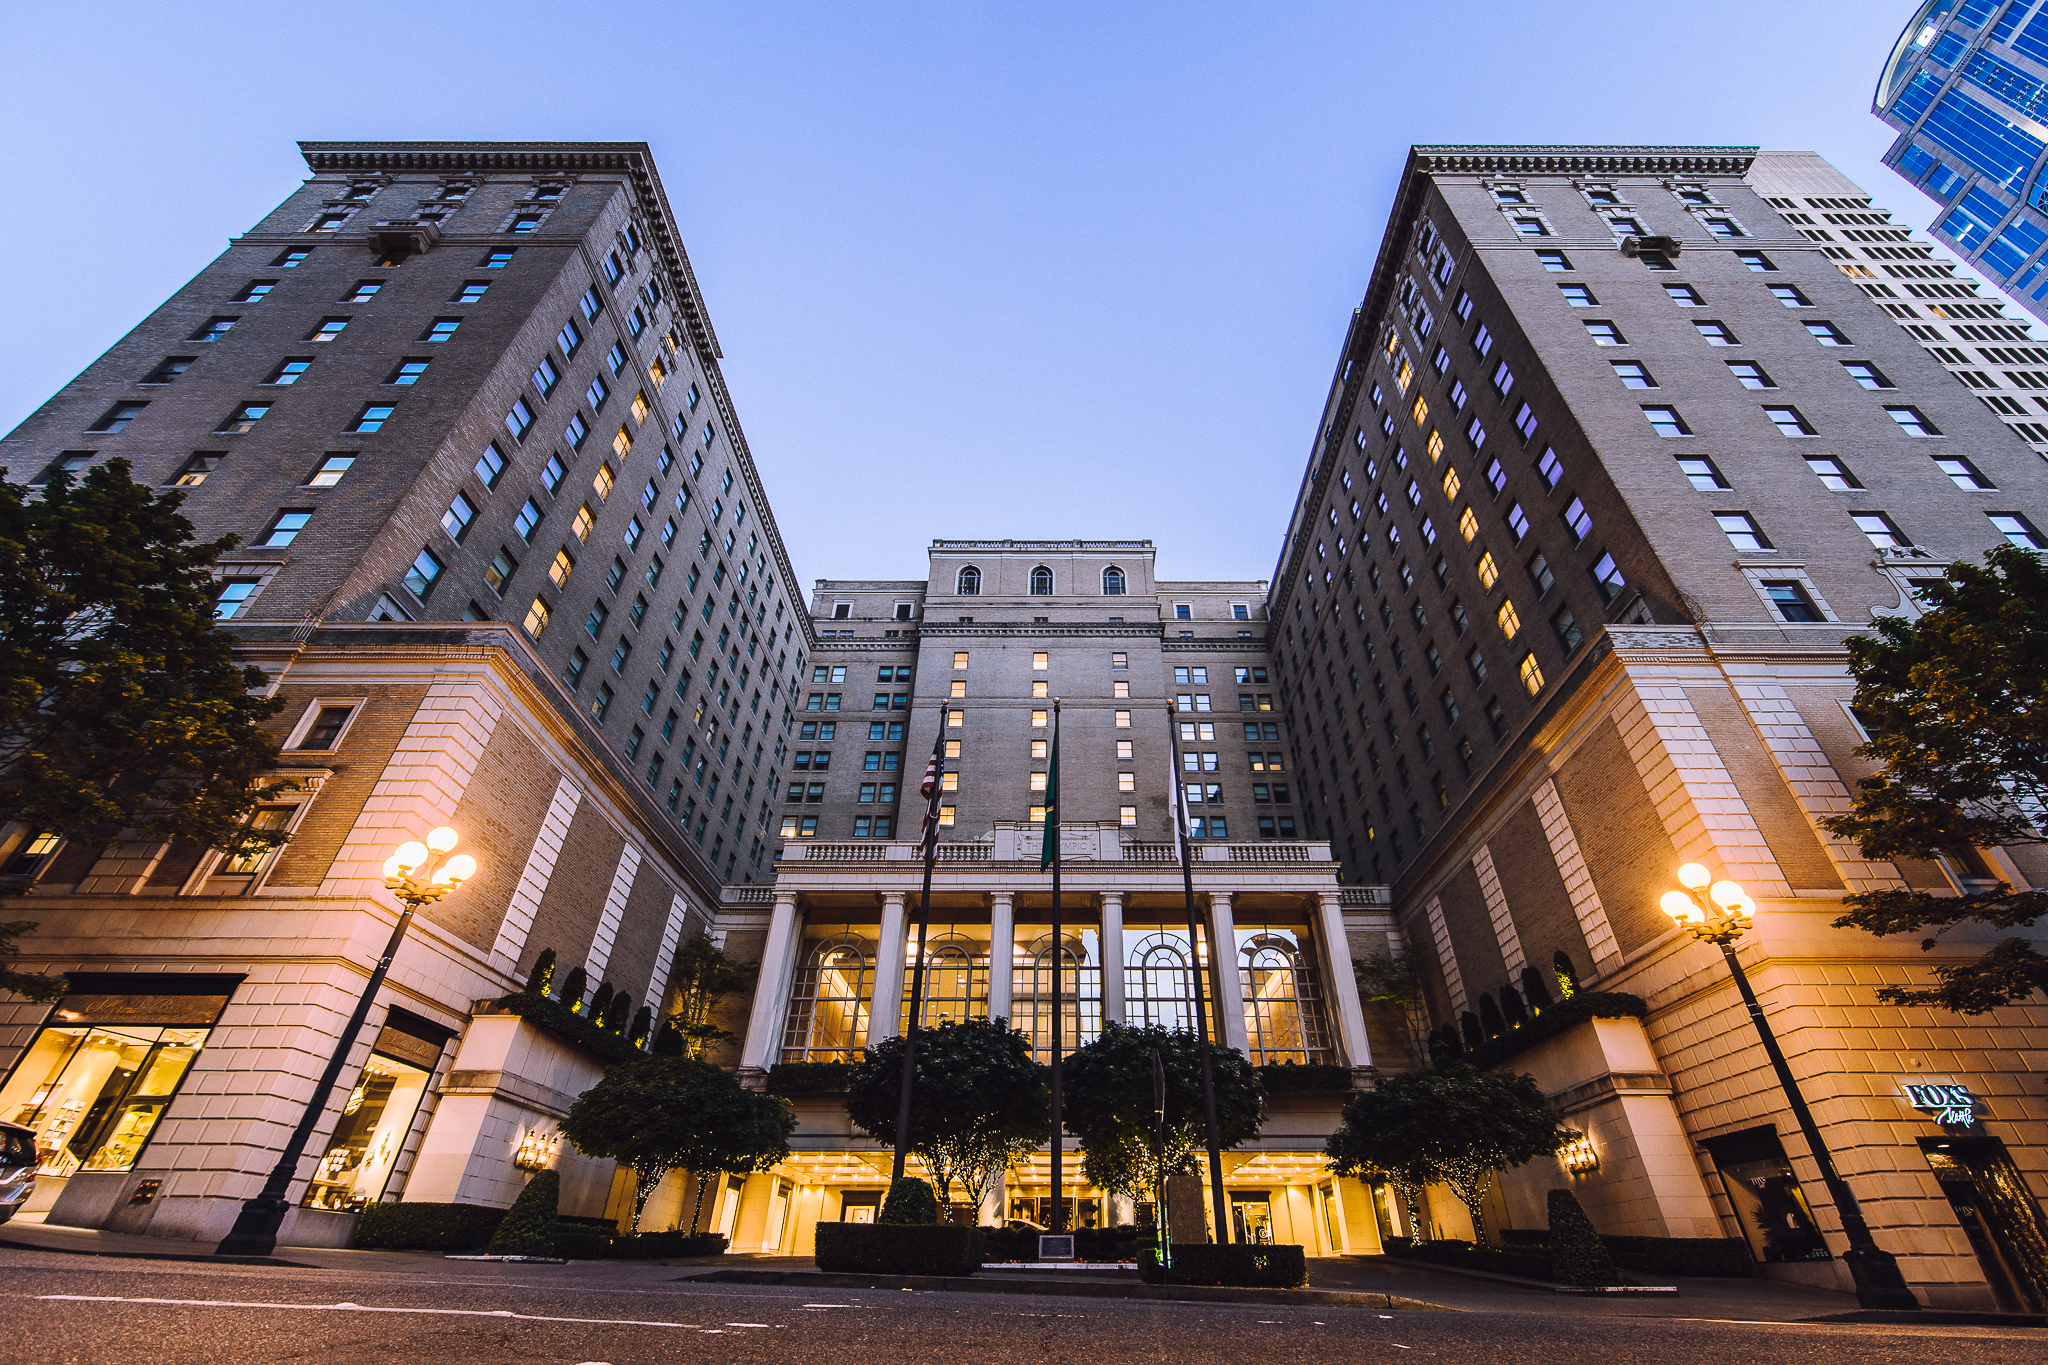 6/The Fairmont Olympic Hotel